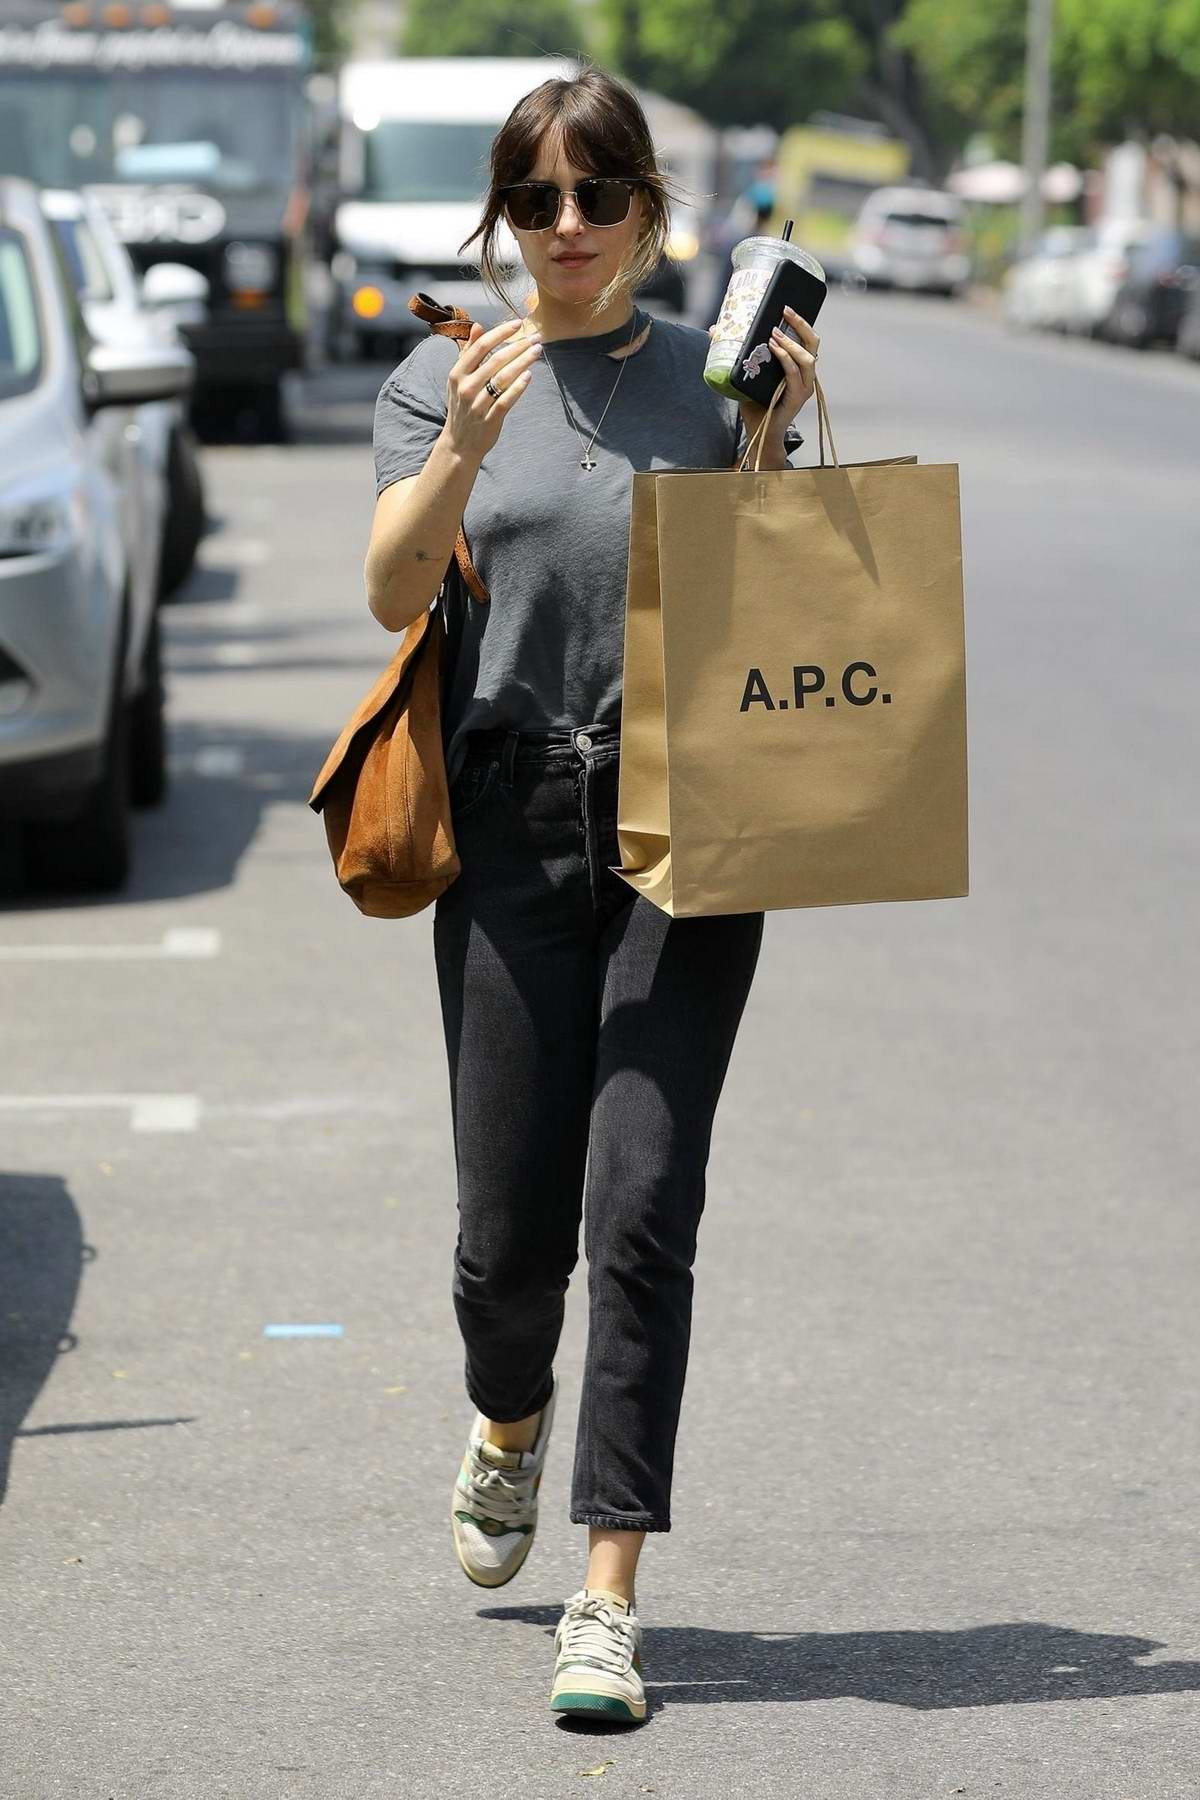 8ef292363 Dakota Johnson wears grey top, black jeans and Gucci sneakers during a  shopping trip to A.P.C in Los Angeles